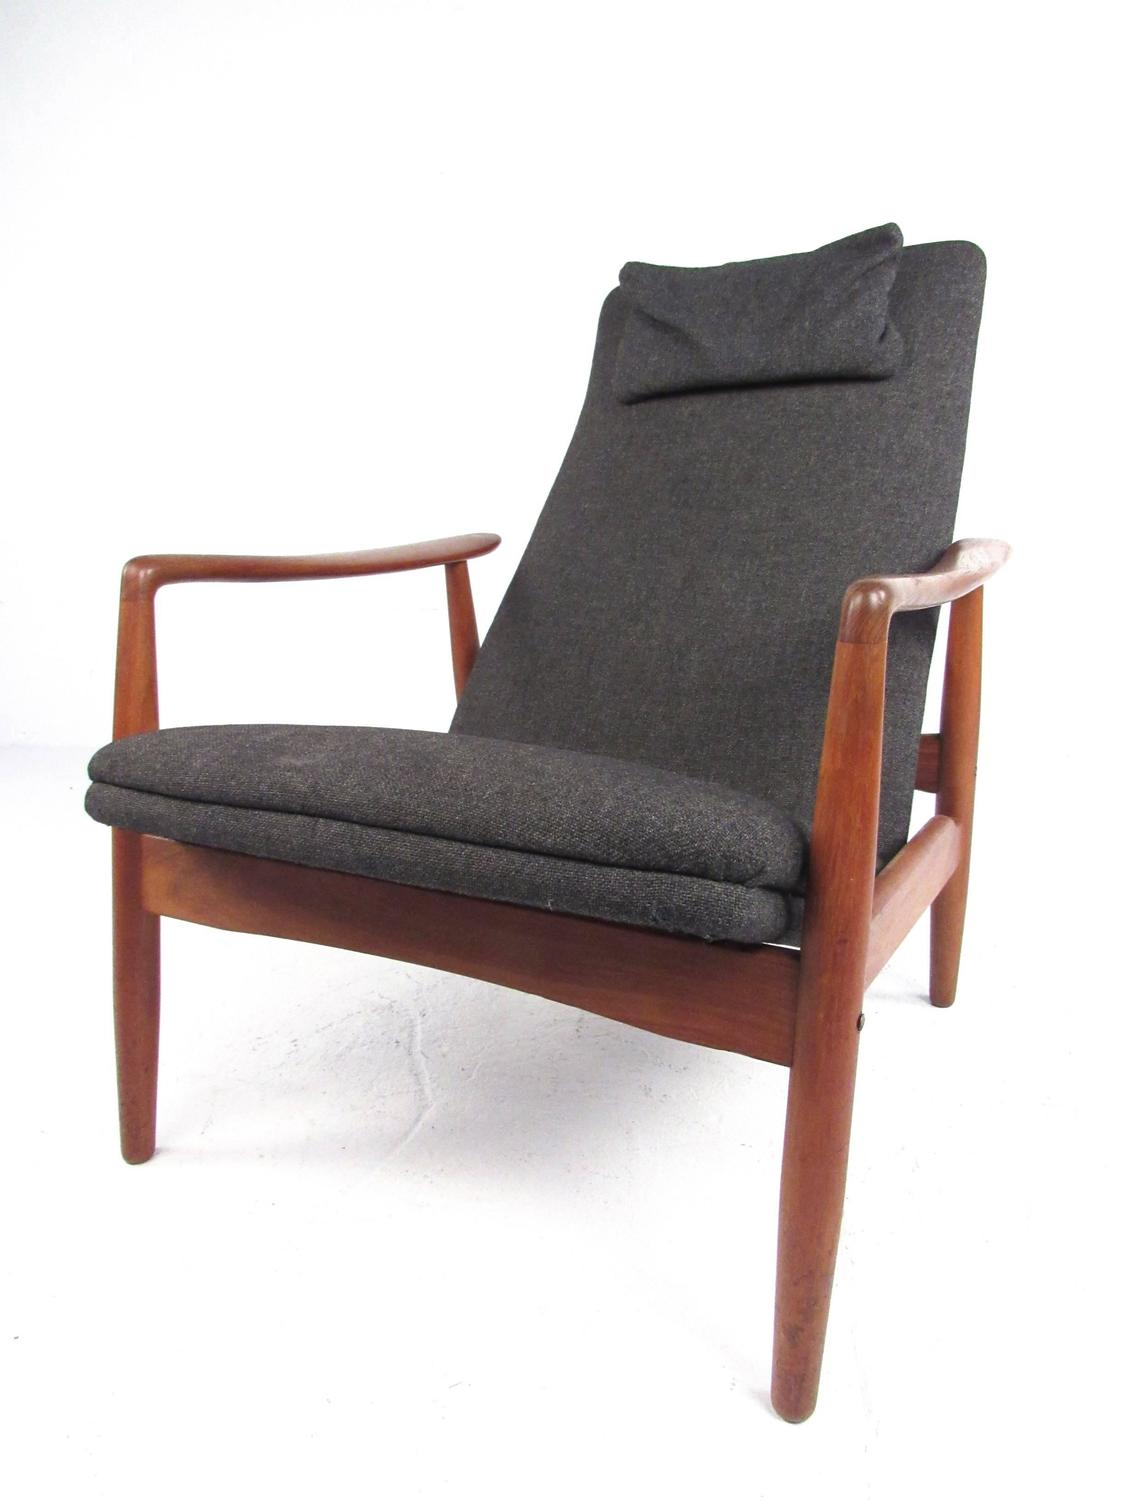 teak chaise lounge chairs sale director chair covers ebay scandinavian modern high back for